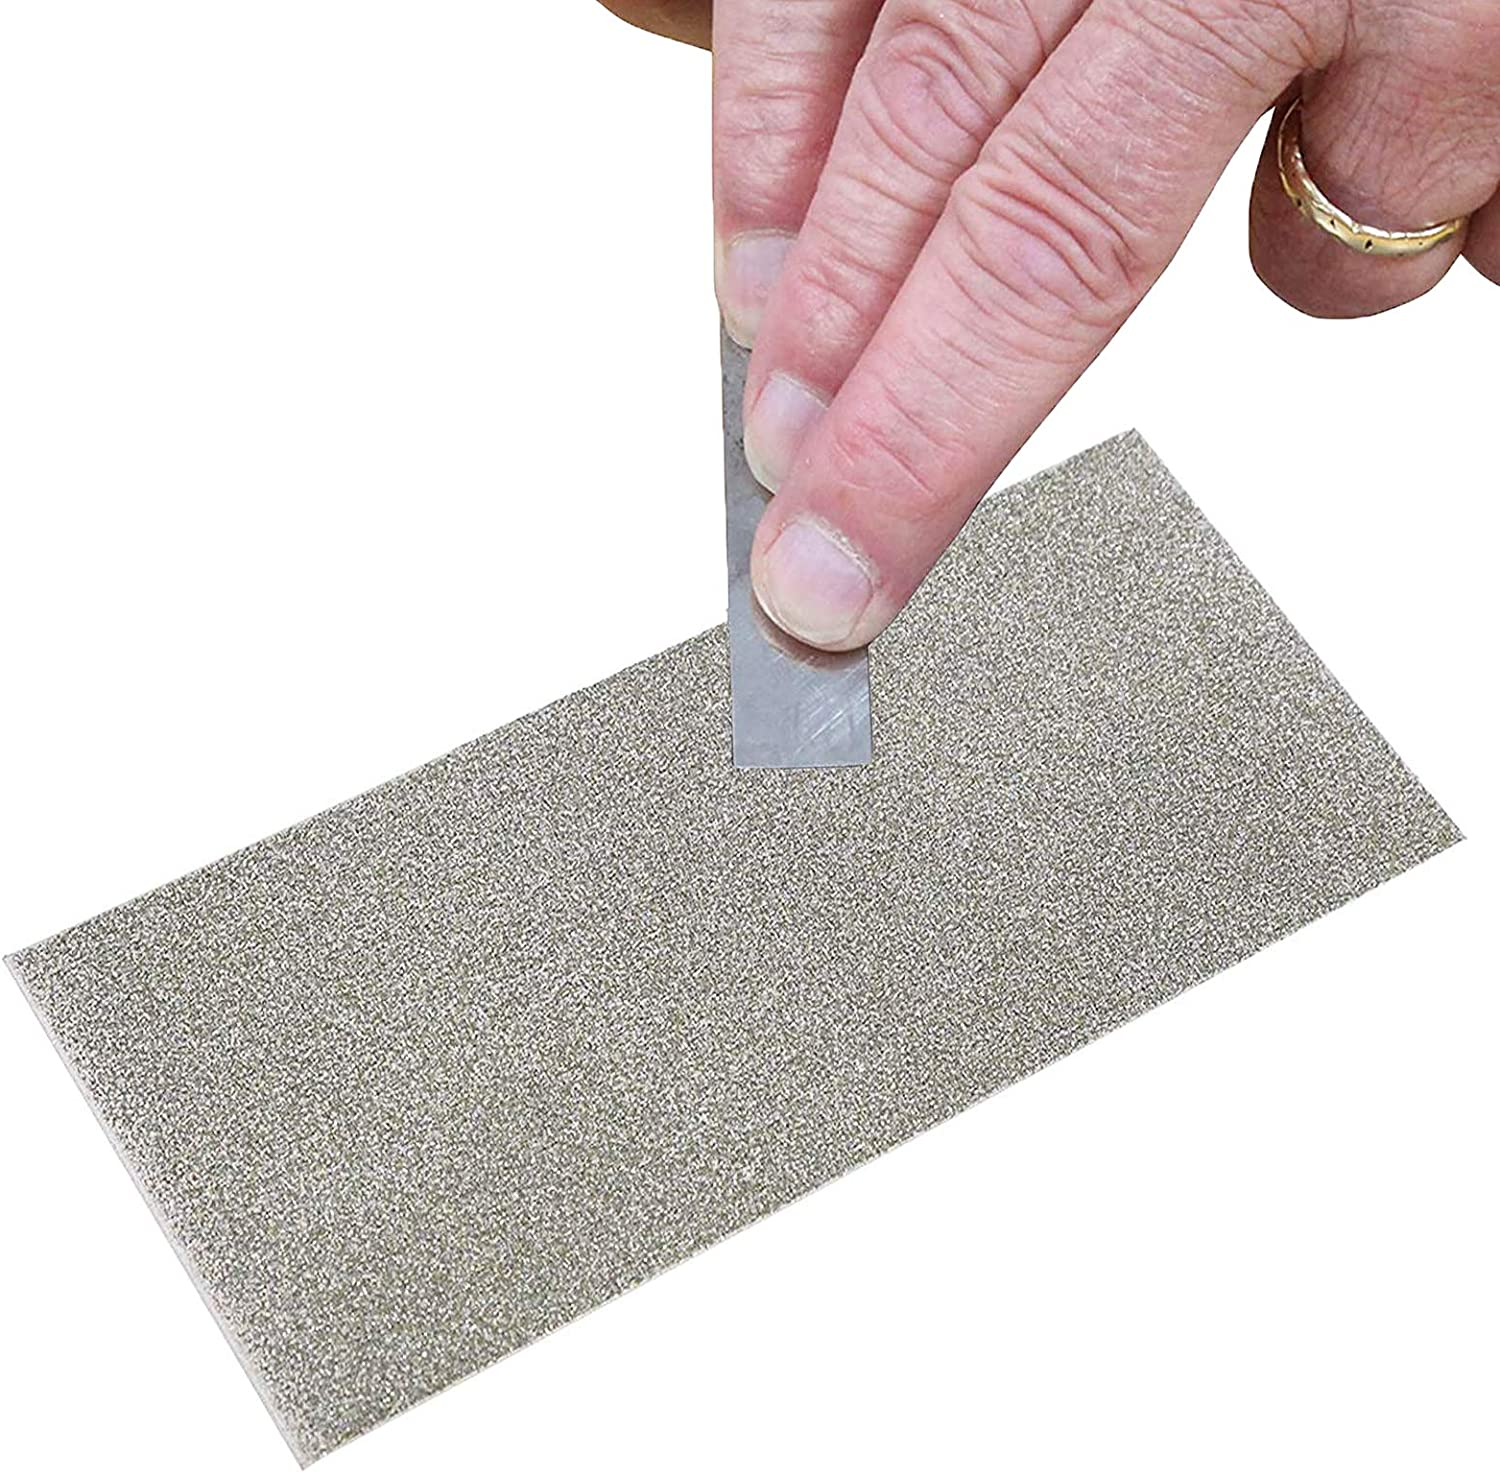 Jewboer Thin Diamond Knife Tool Plate Square Fixed price for sale Wh Stone Sharpening Raleigh Mall